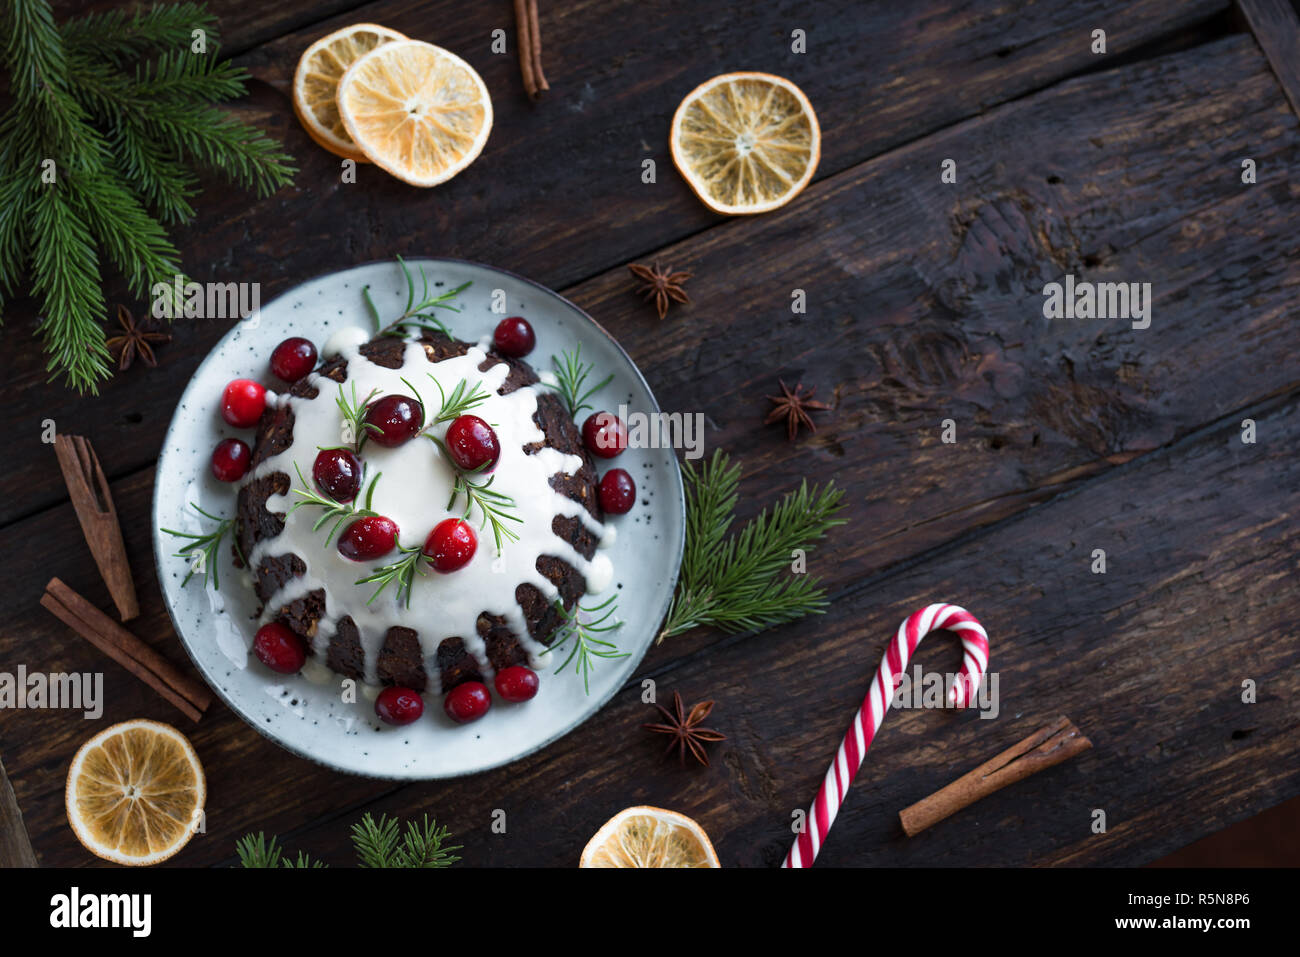 Christmas Pudding, Fruit Cake decorated with icing and cranberries on rustic wooden table, copy space, top view. Homemade traditional christmas desser - Stock Image